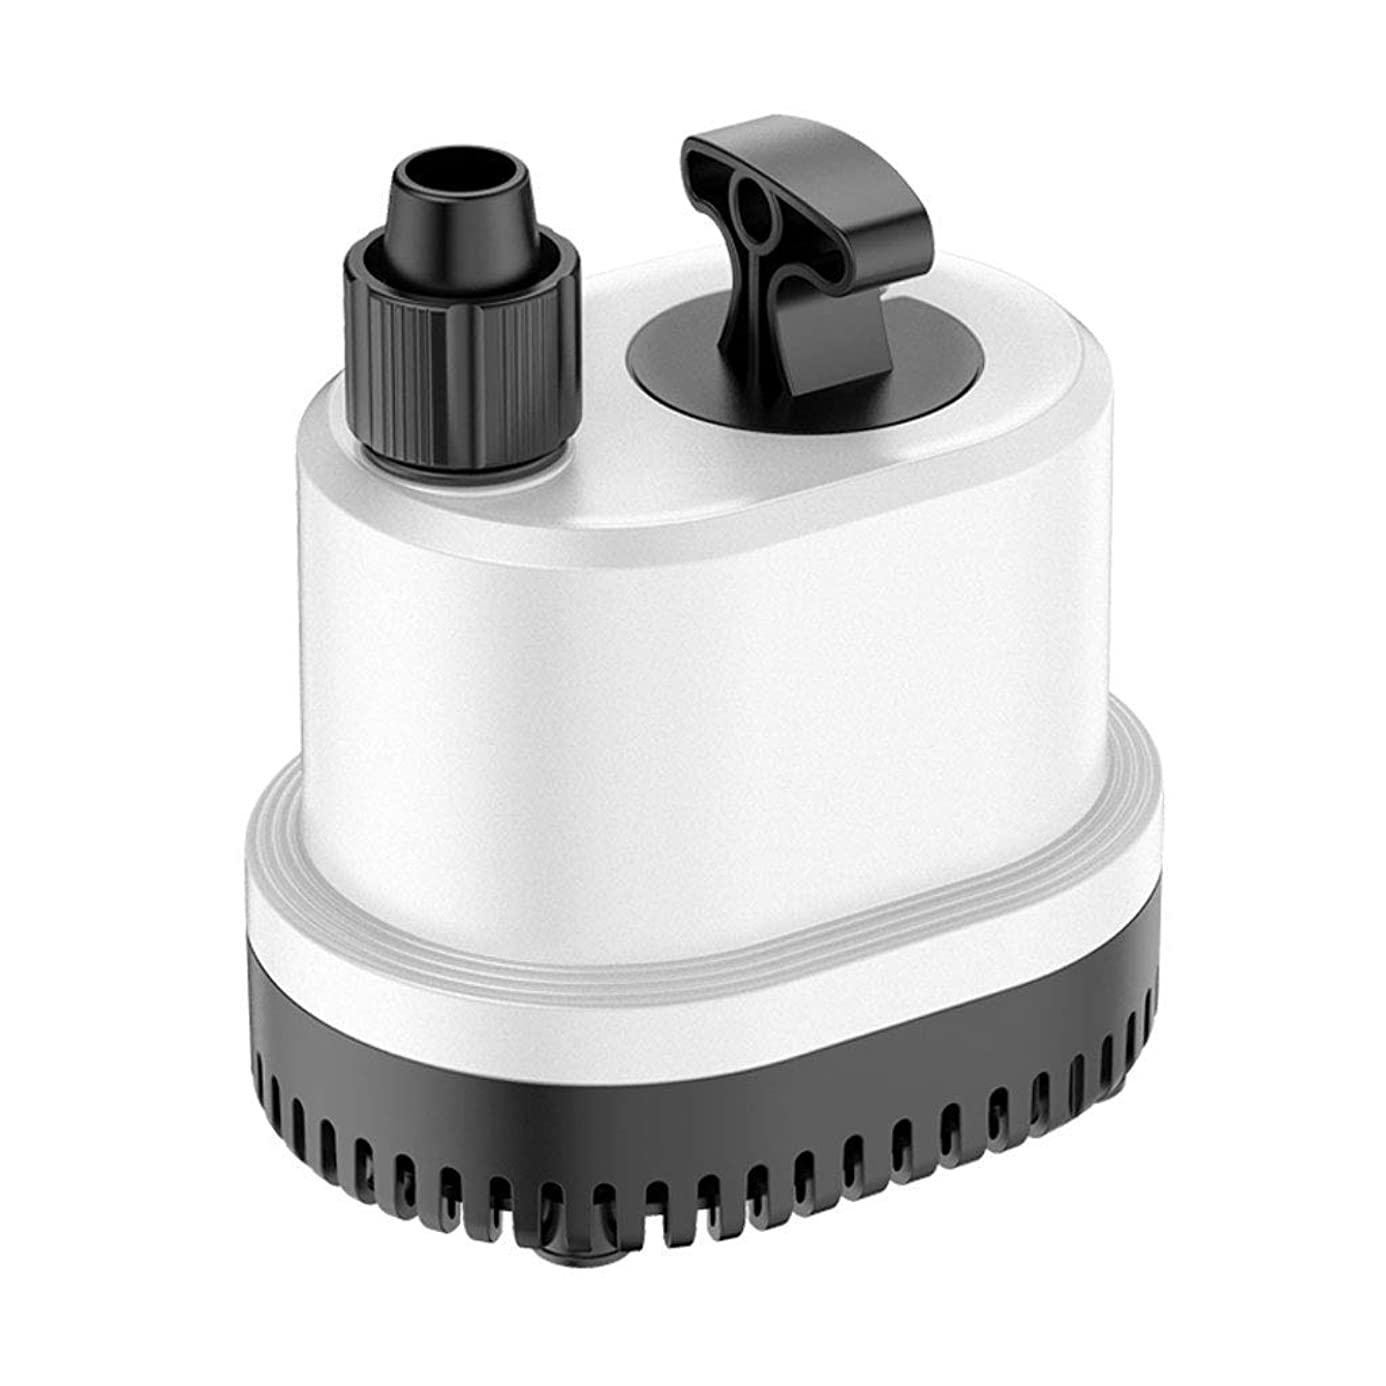 Aqua Submersible Pump Silent Energy-Saving 360 ° Fountain Pump Anti-Dry. Suitable for Garden Fountains Fish Tanks Pool Fish Ponds etc Filtration Drainage